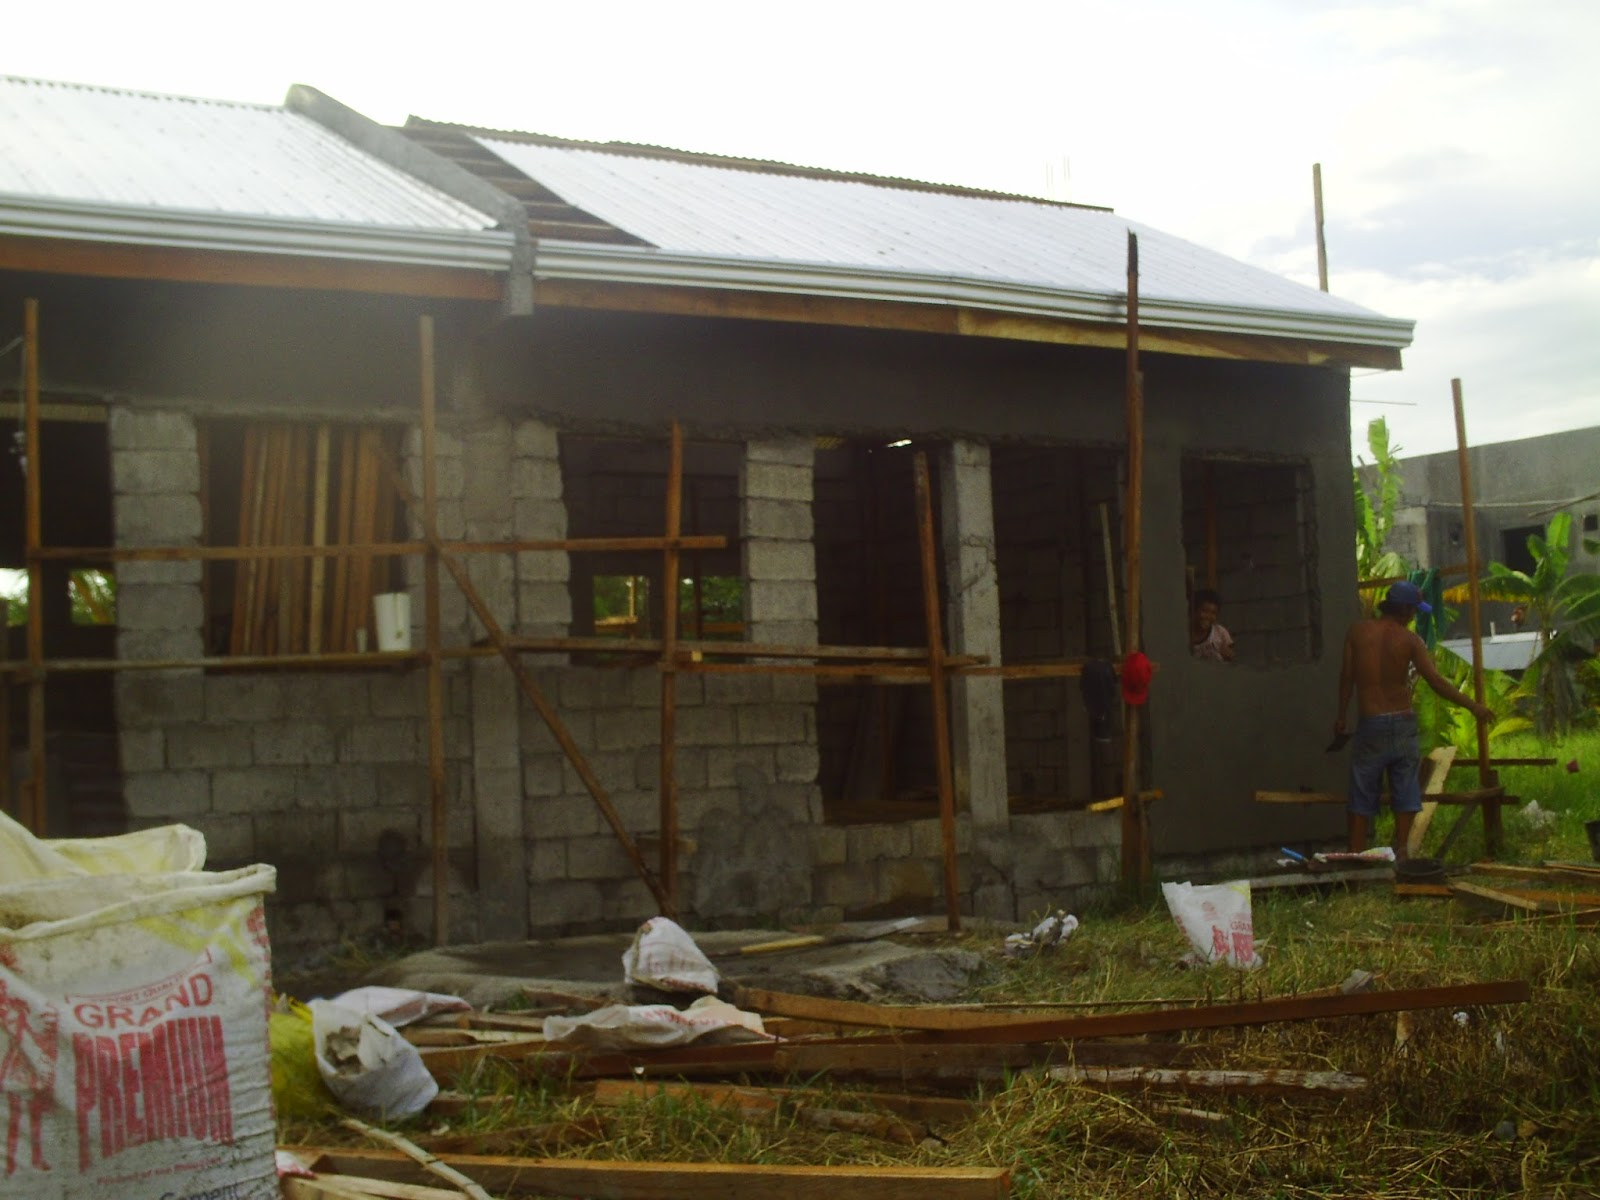 Ofw business ideas 4 doors concrete apartment at p175k Building on a lot